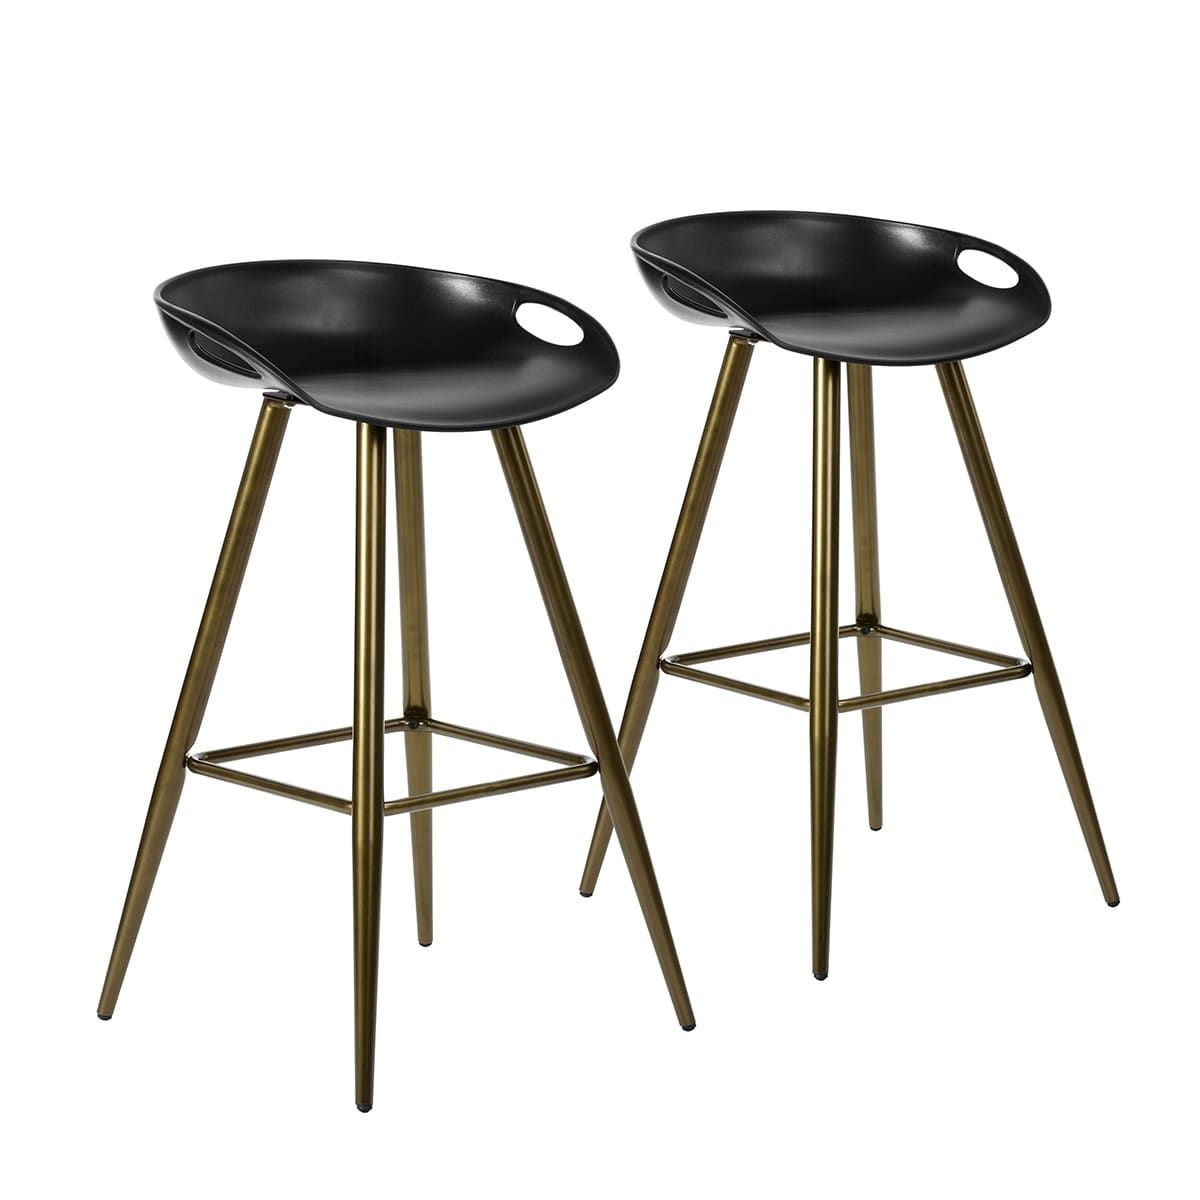 Outstanding Furniturer Low Back Fixed Height Bar Stool Set Of 2 Black Bralicious Painted Fabric Chair Ideas Braliciousco